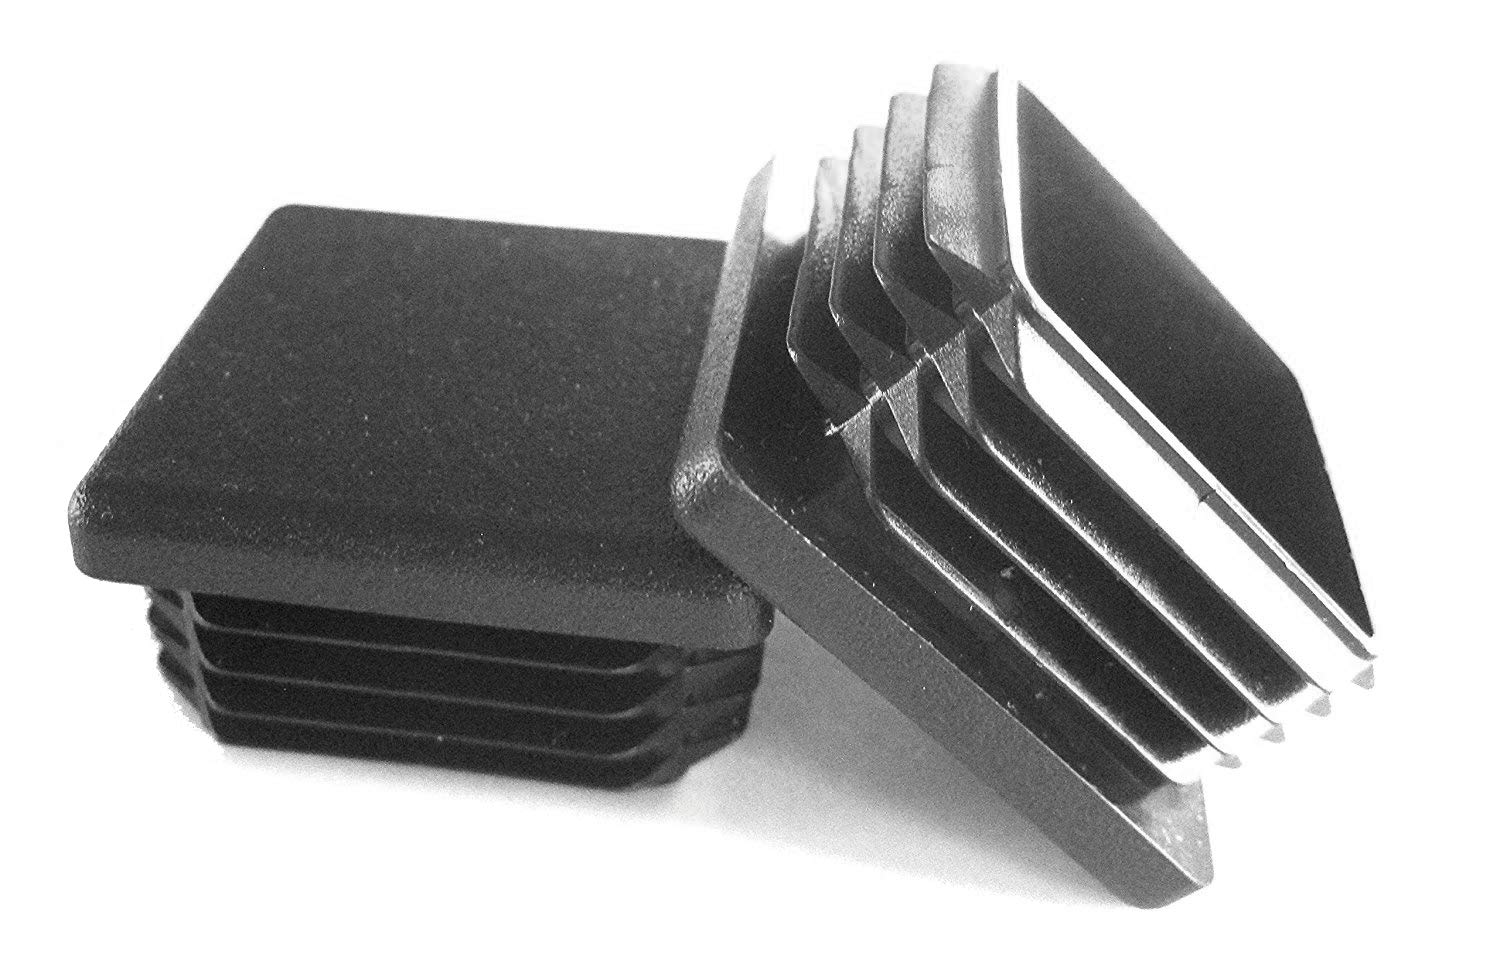 8 Pack: 1 1/2 Inch Square Plastic Plug, Tubing End Cap, Durable Chair Glide